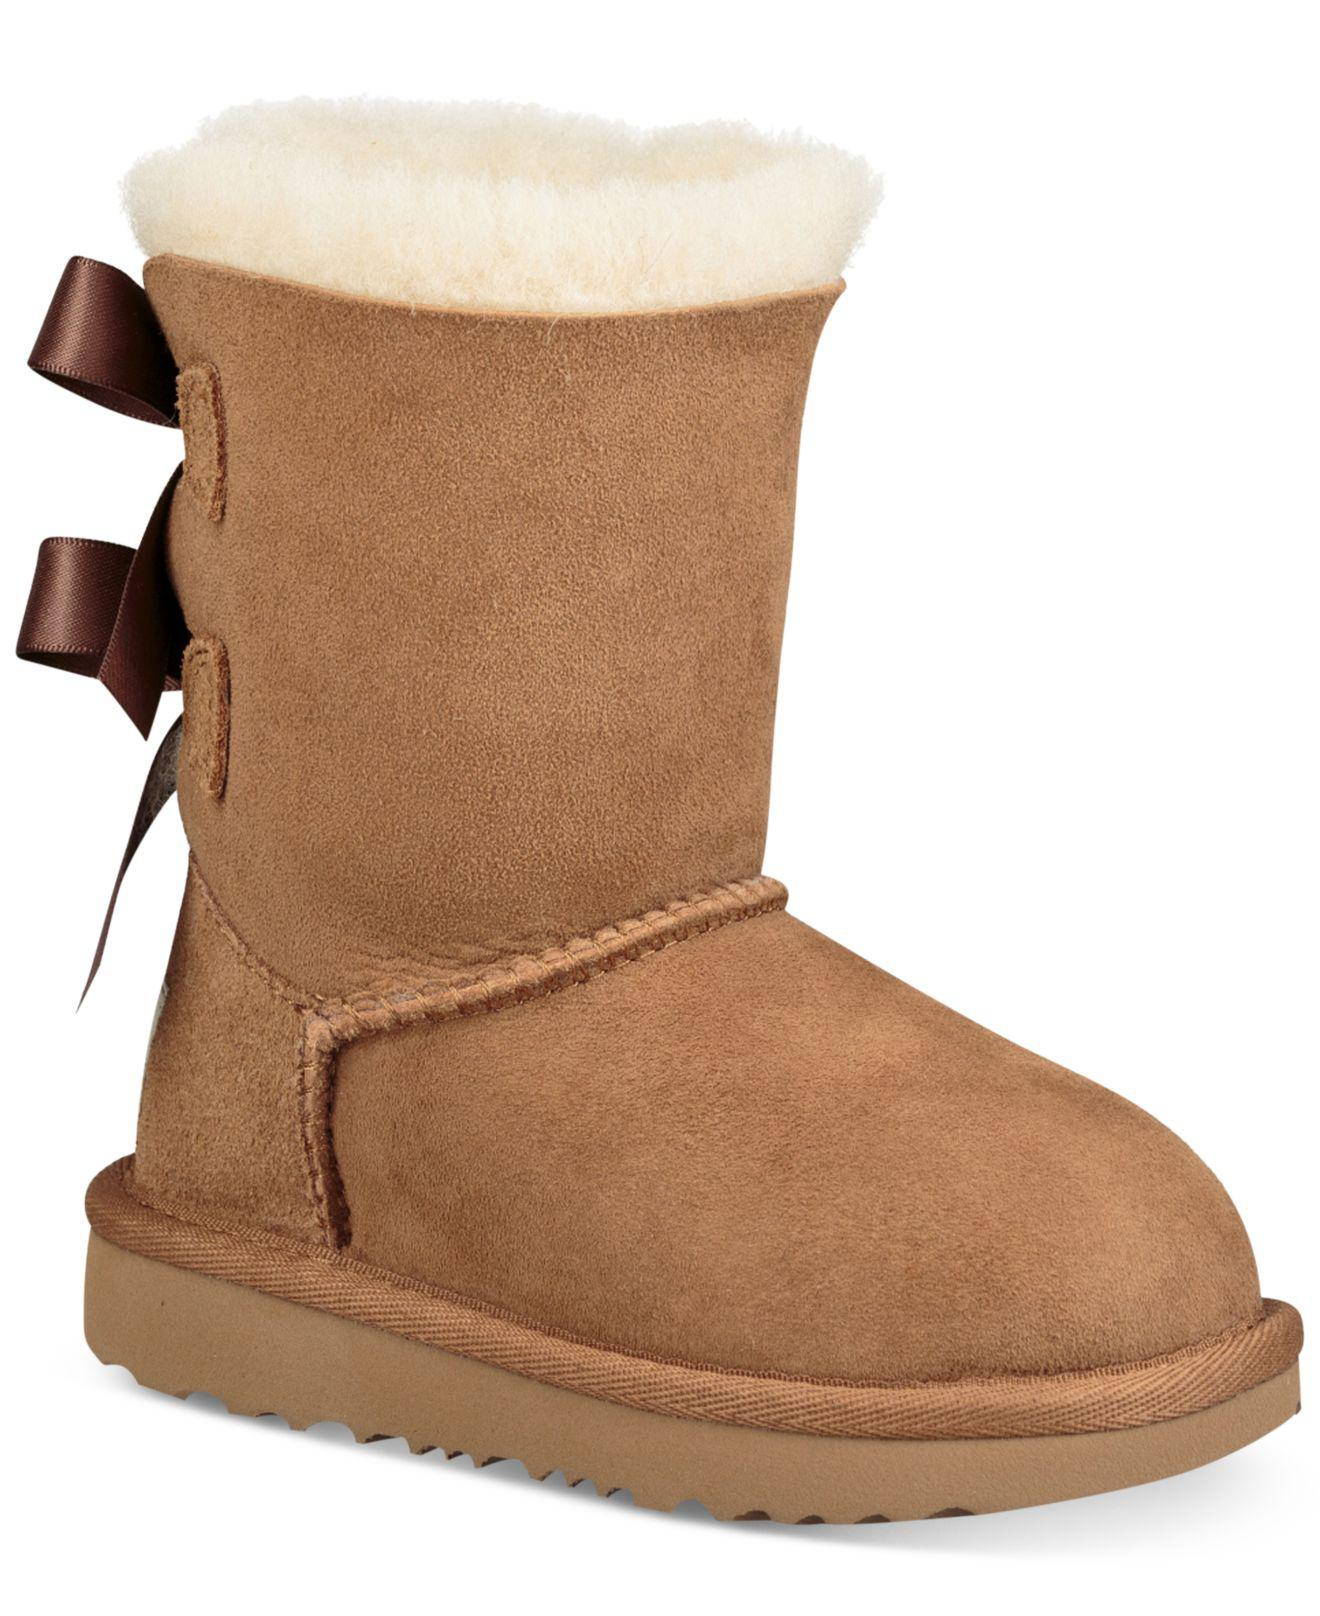 bailey bow uggs tan